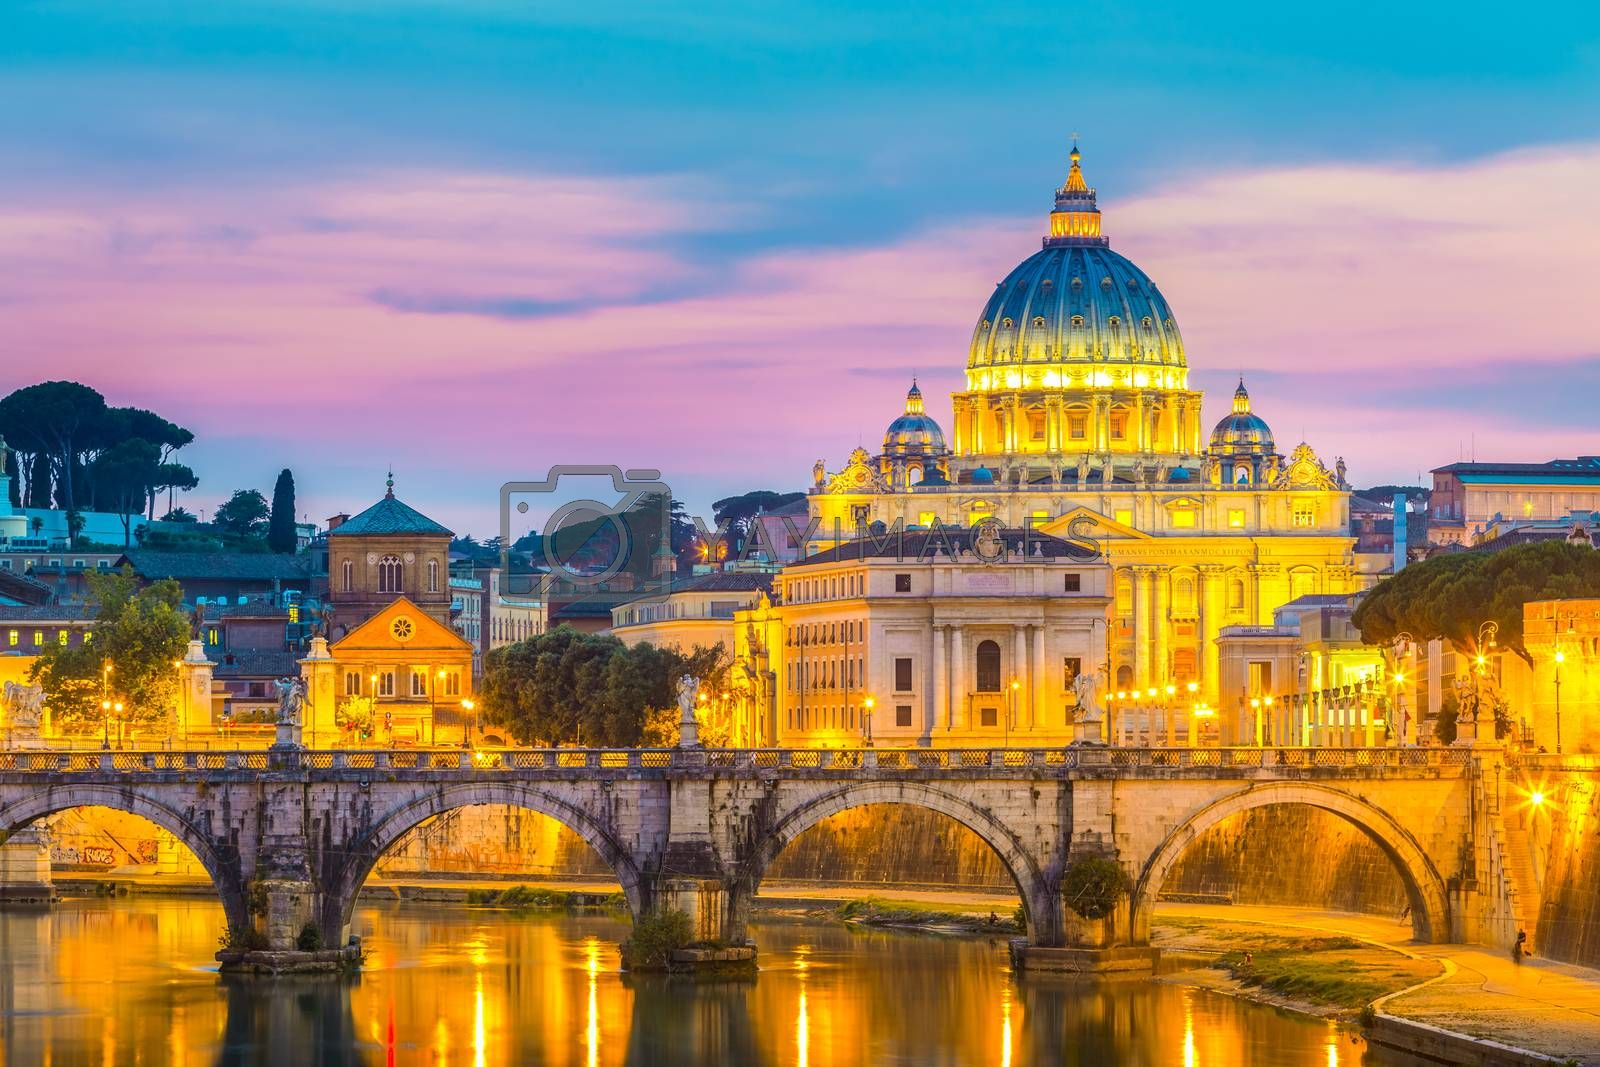 Royalty free image of View at St. Peter's cathedral in Rome, Italy by kasto